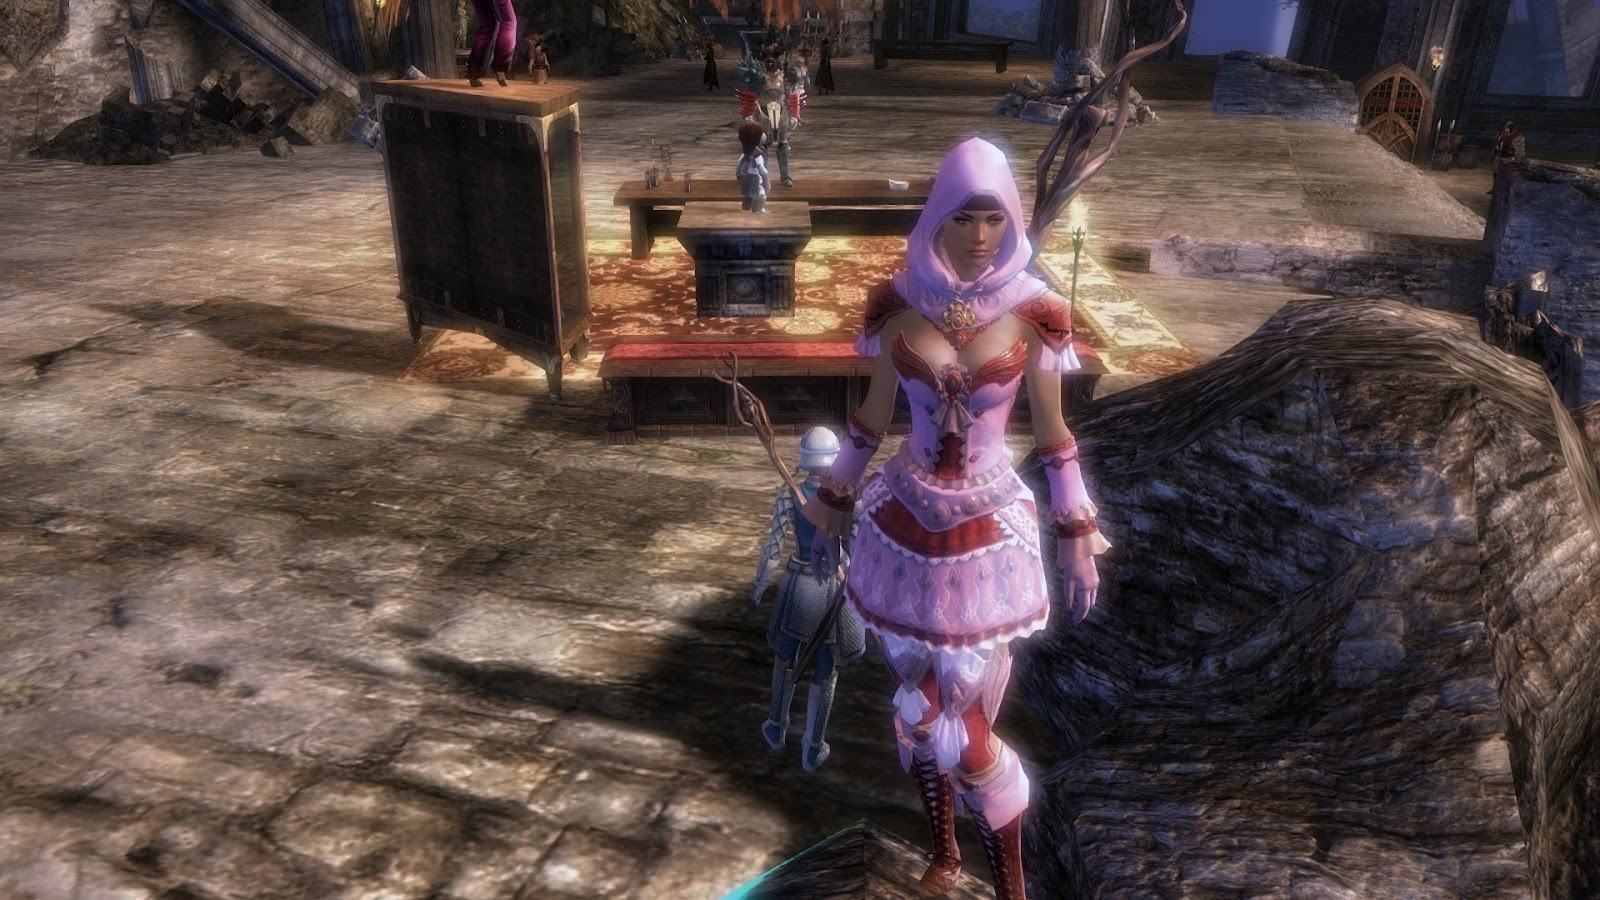 Guild Wars 2 Data Guild Wars 2 Guide 1 400 Cooking In 15g And 1k